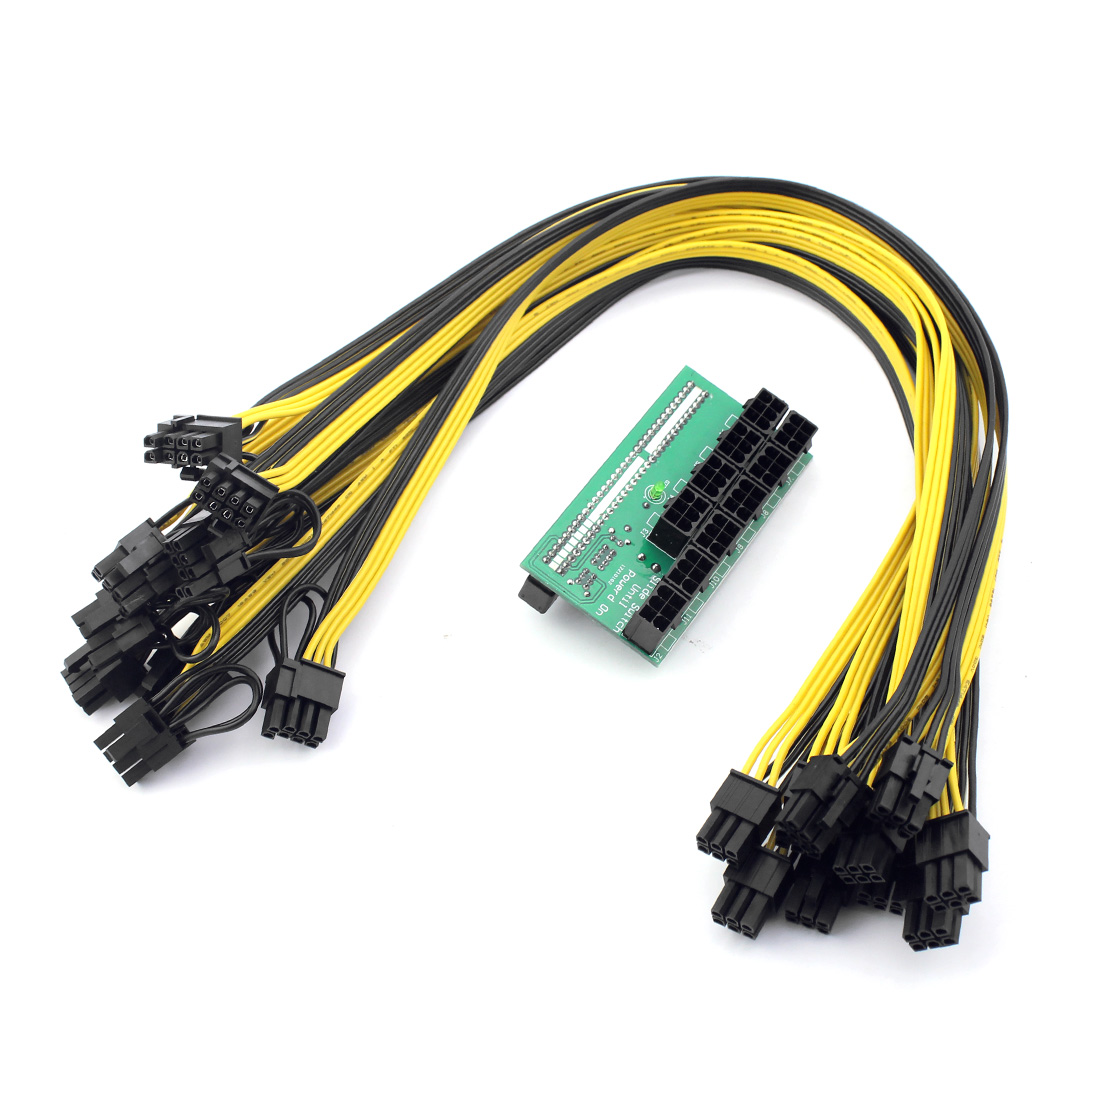 Mining Power Supply Kit - 10x 6Pin Port Breakout Adapter Board with 10pcs 50CM UL 1007 18AWG 6Pin Male to 6Pin Male Cable F21760